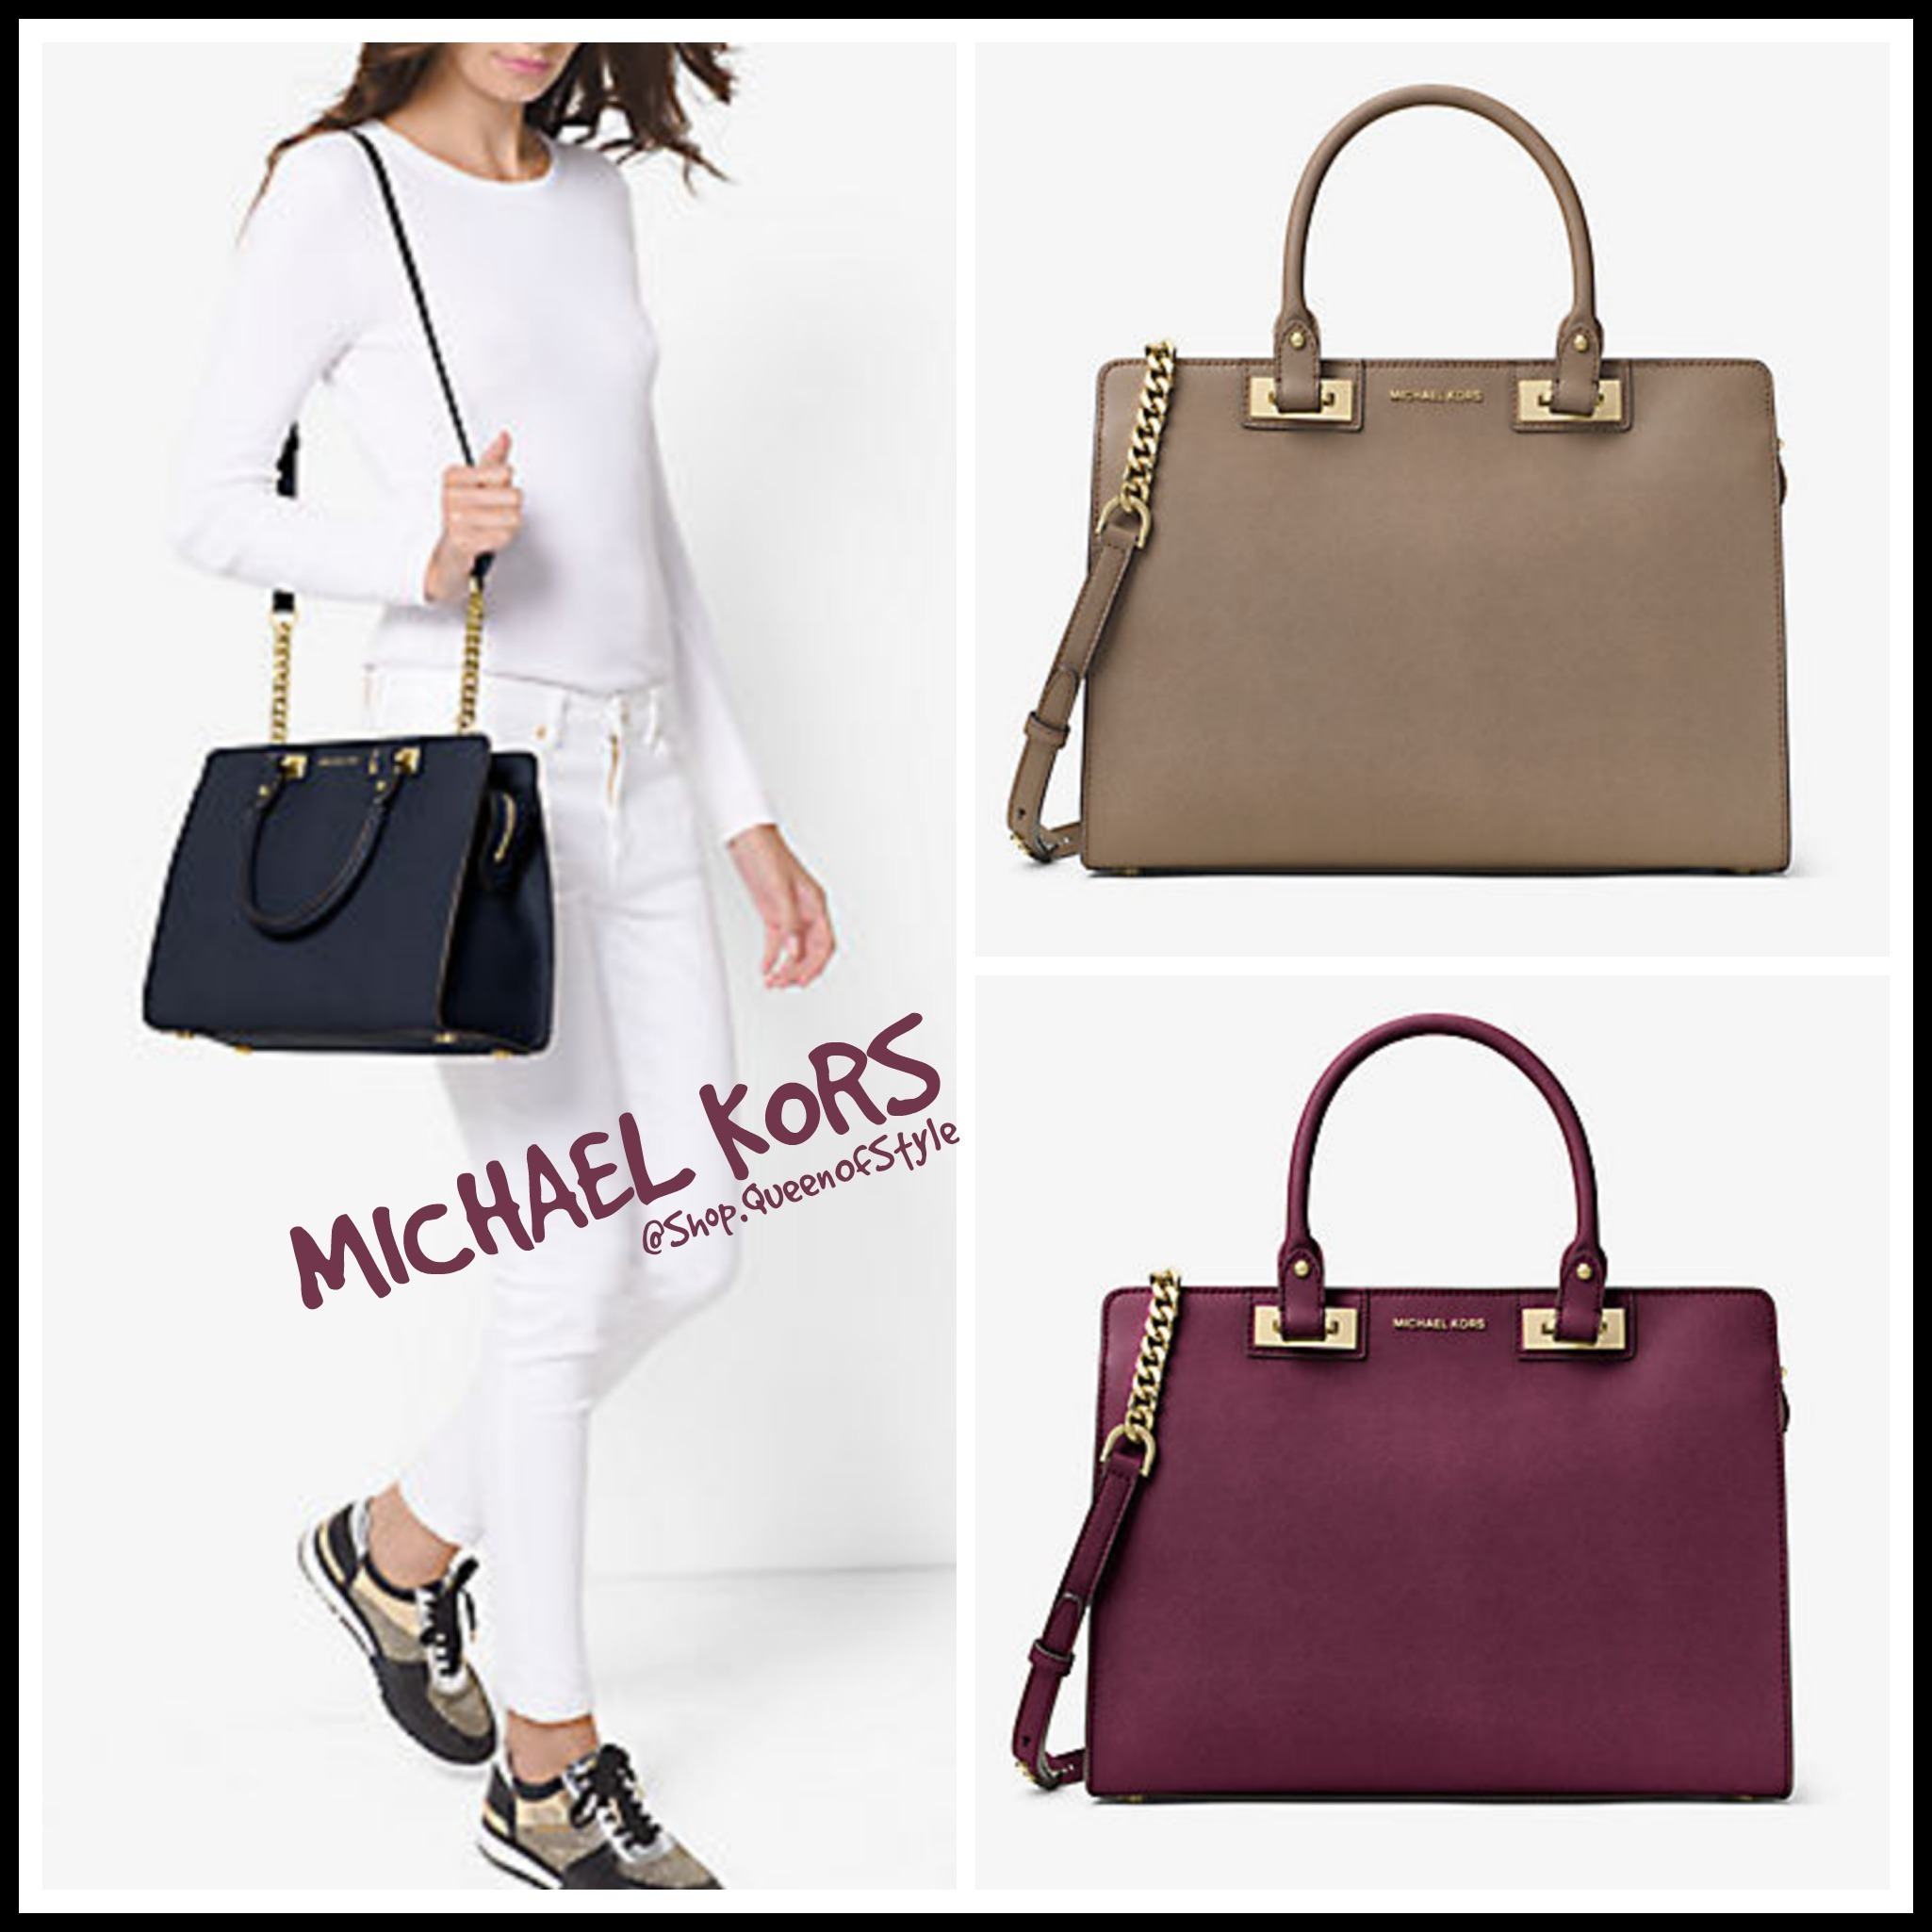 9f6e02a0924820 Michael Kors MK Quinn Large Saffiano Leather Satchel Bag 30H6GQNS3L by  QueenOfStyle - BUYMA